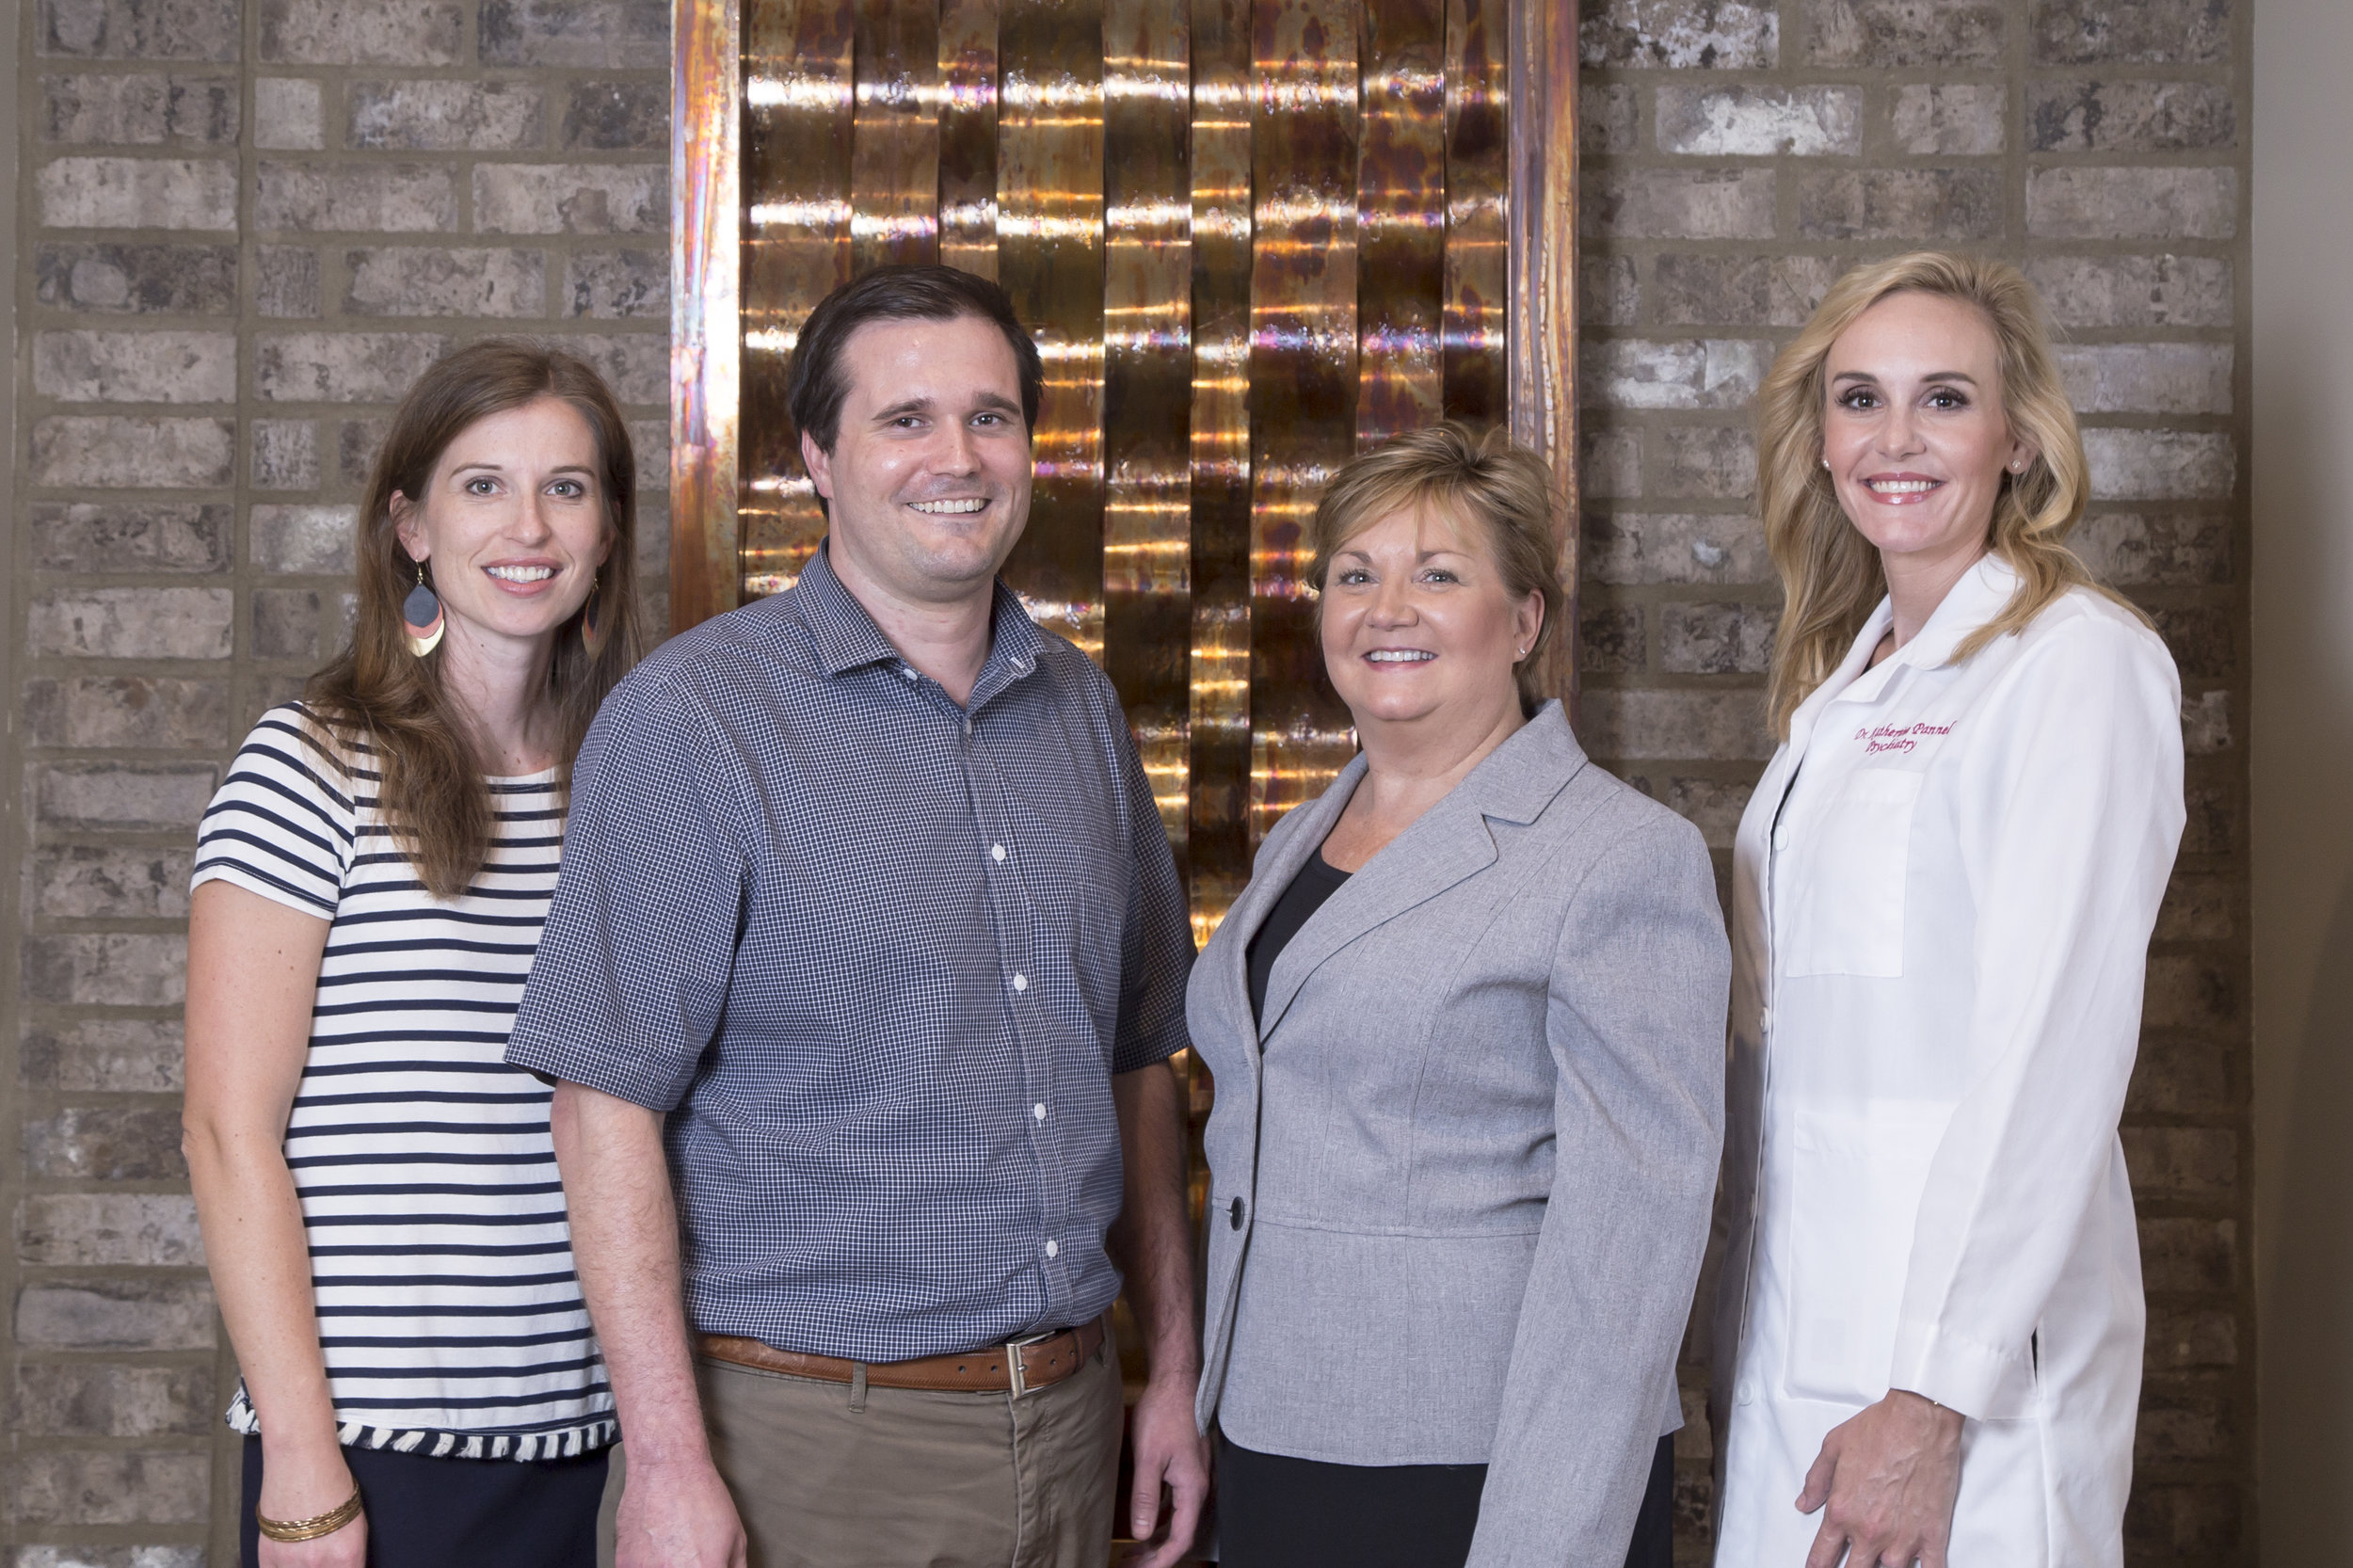 The staff of Right Track Medical Group includes Emily Grace Ames, LPC; Clark Hunt, LPC; Cindy Seal, Practice Administrator; and Katherine Pannel, DO, Psychiatrist and Medical Director.